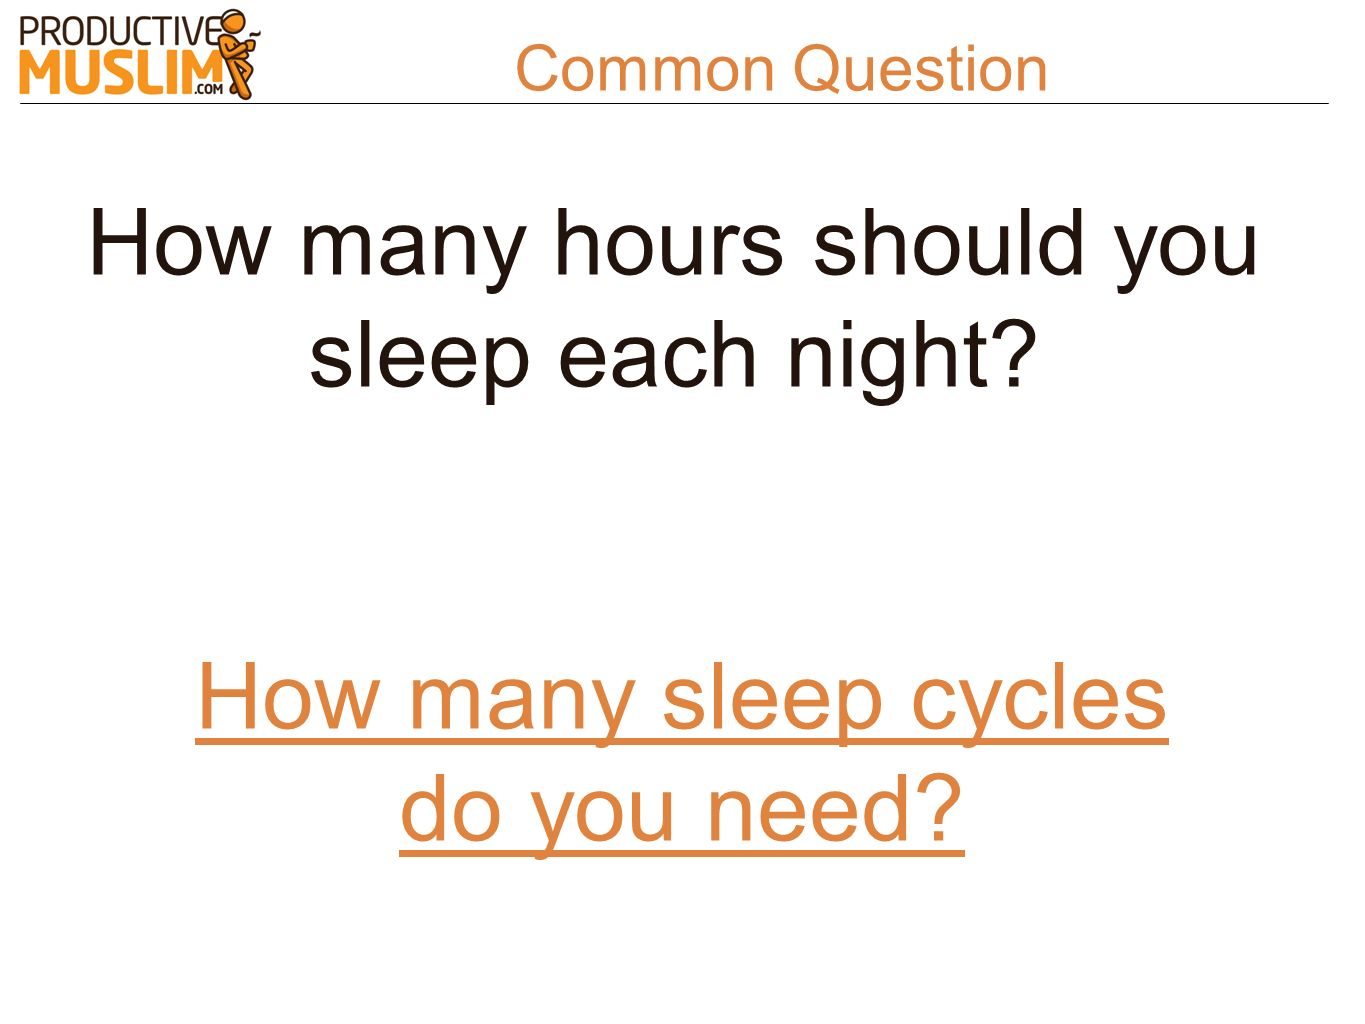 How many hours should you sleep each night? Common Question How many sleep cycles do you need?